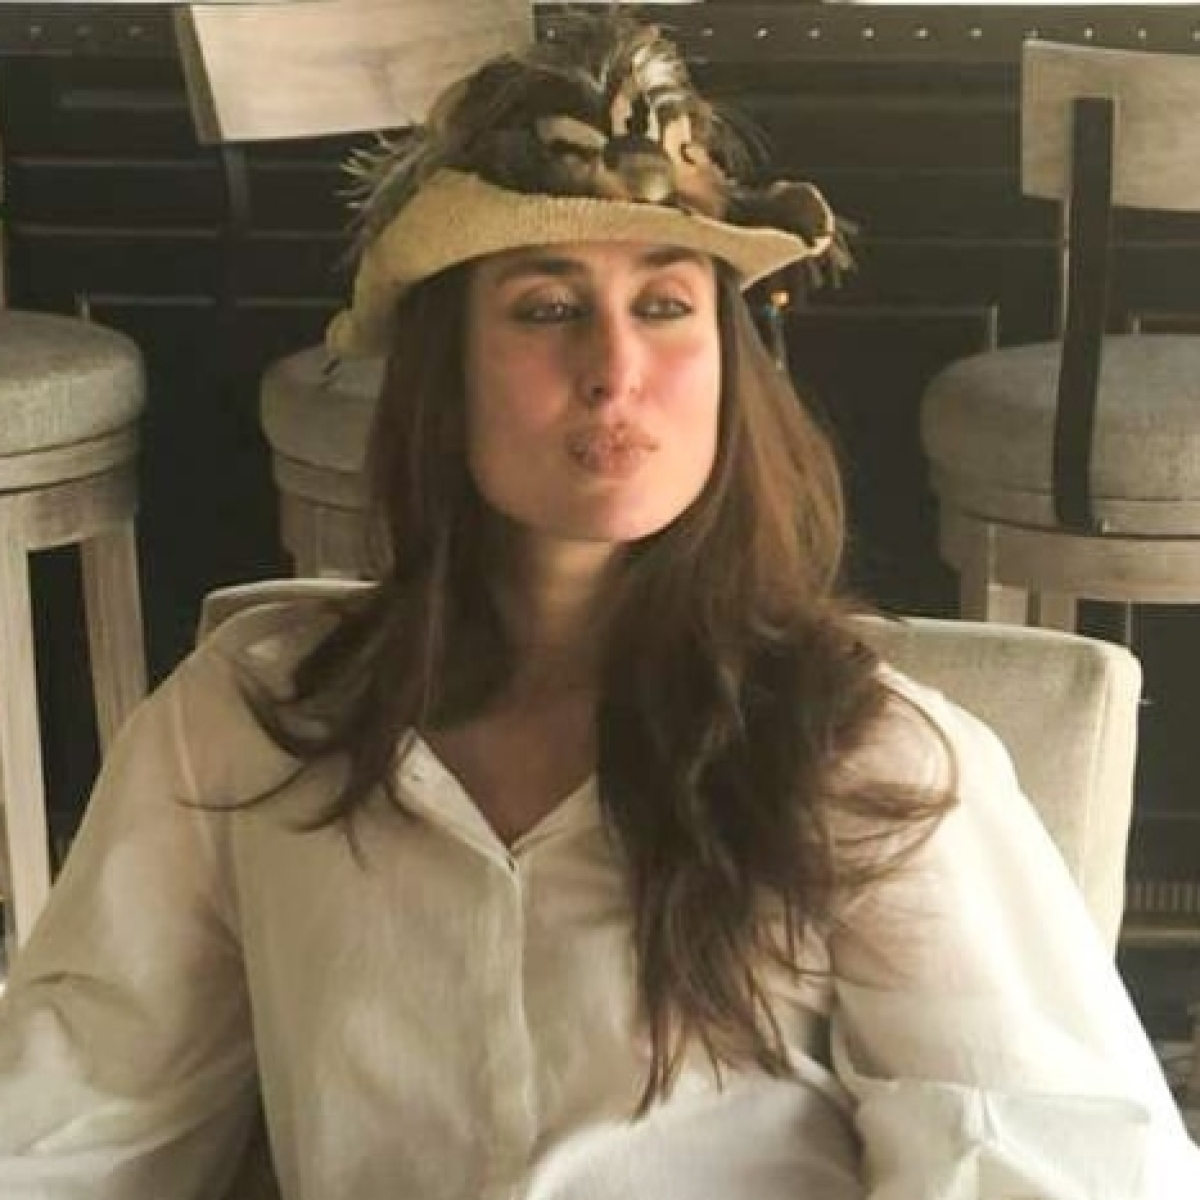 Arjun Kapoor thinks Kareena is 'underdressed' in her latest 'work from home' picture